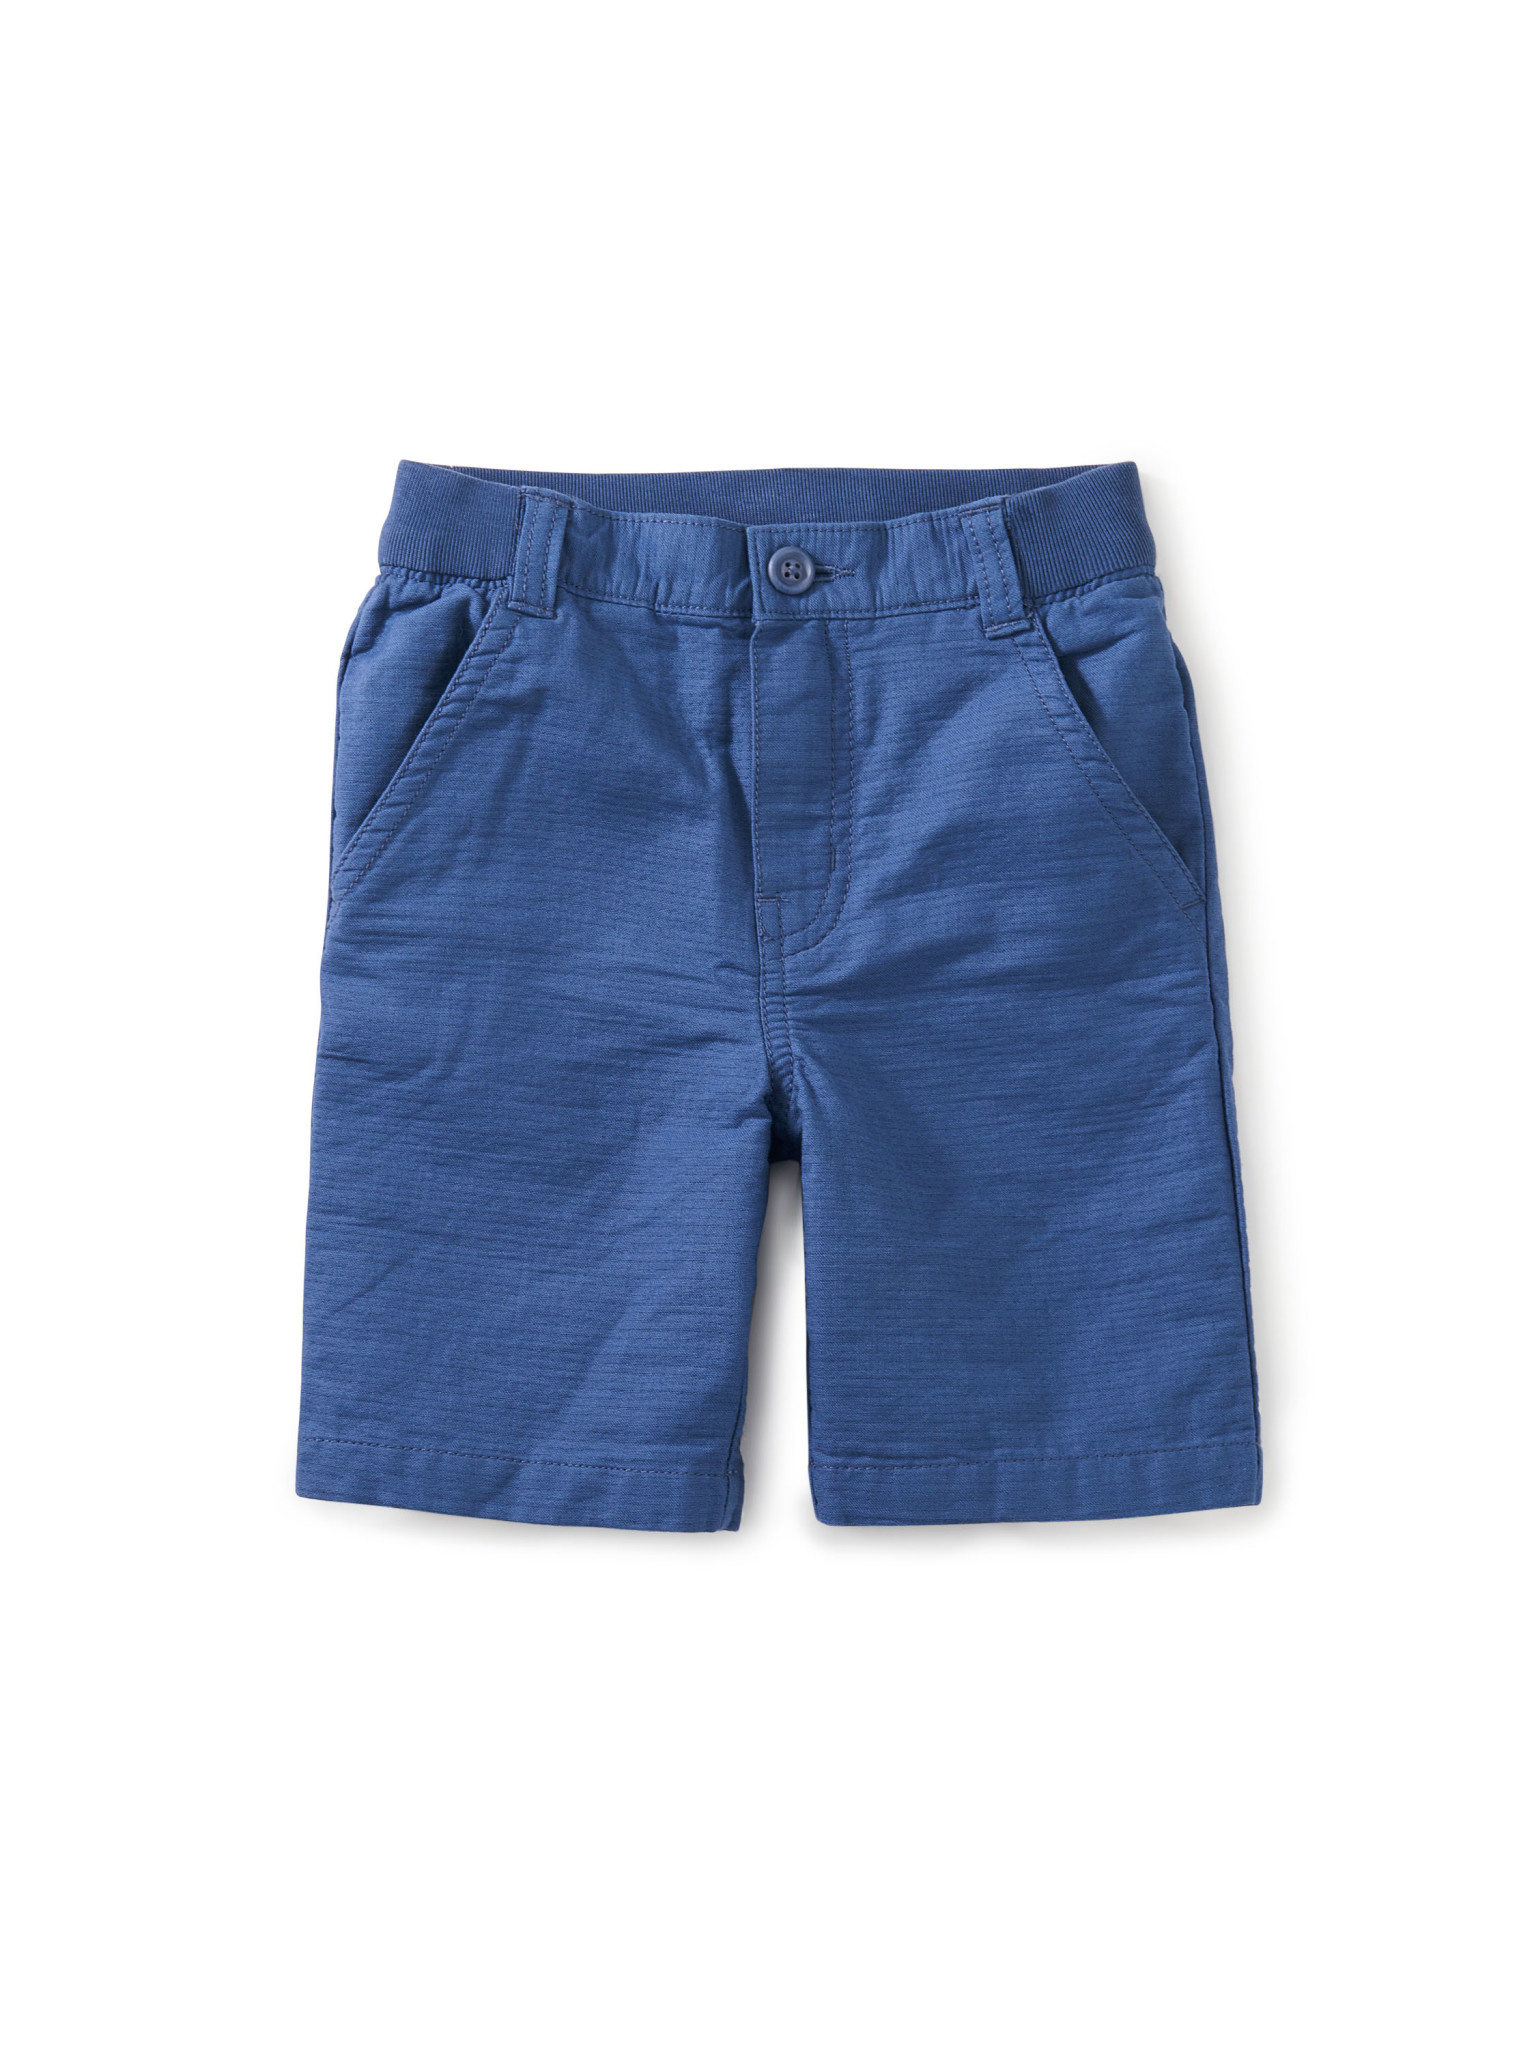 Tea Collection Destination Shorts- Cobalt